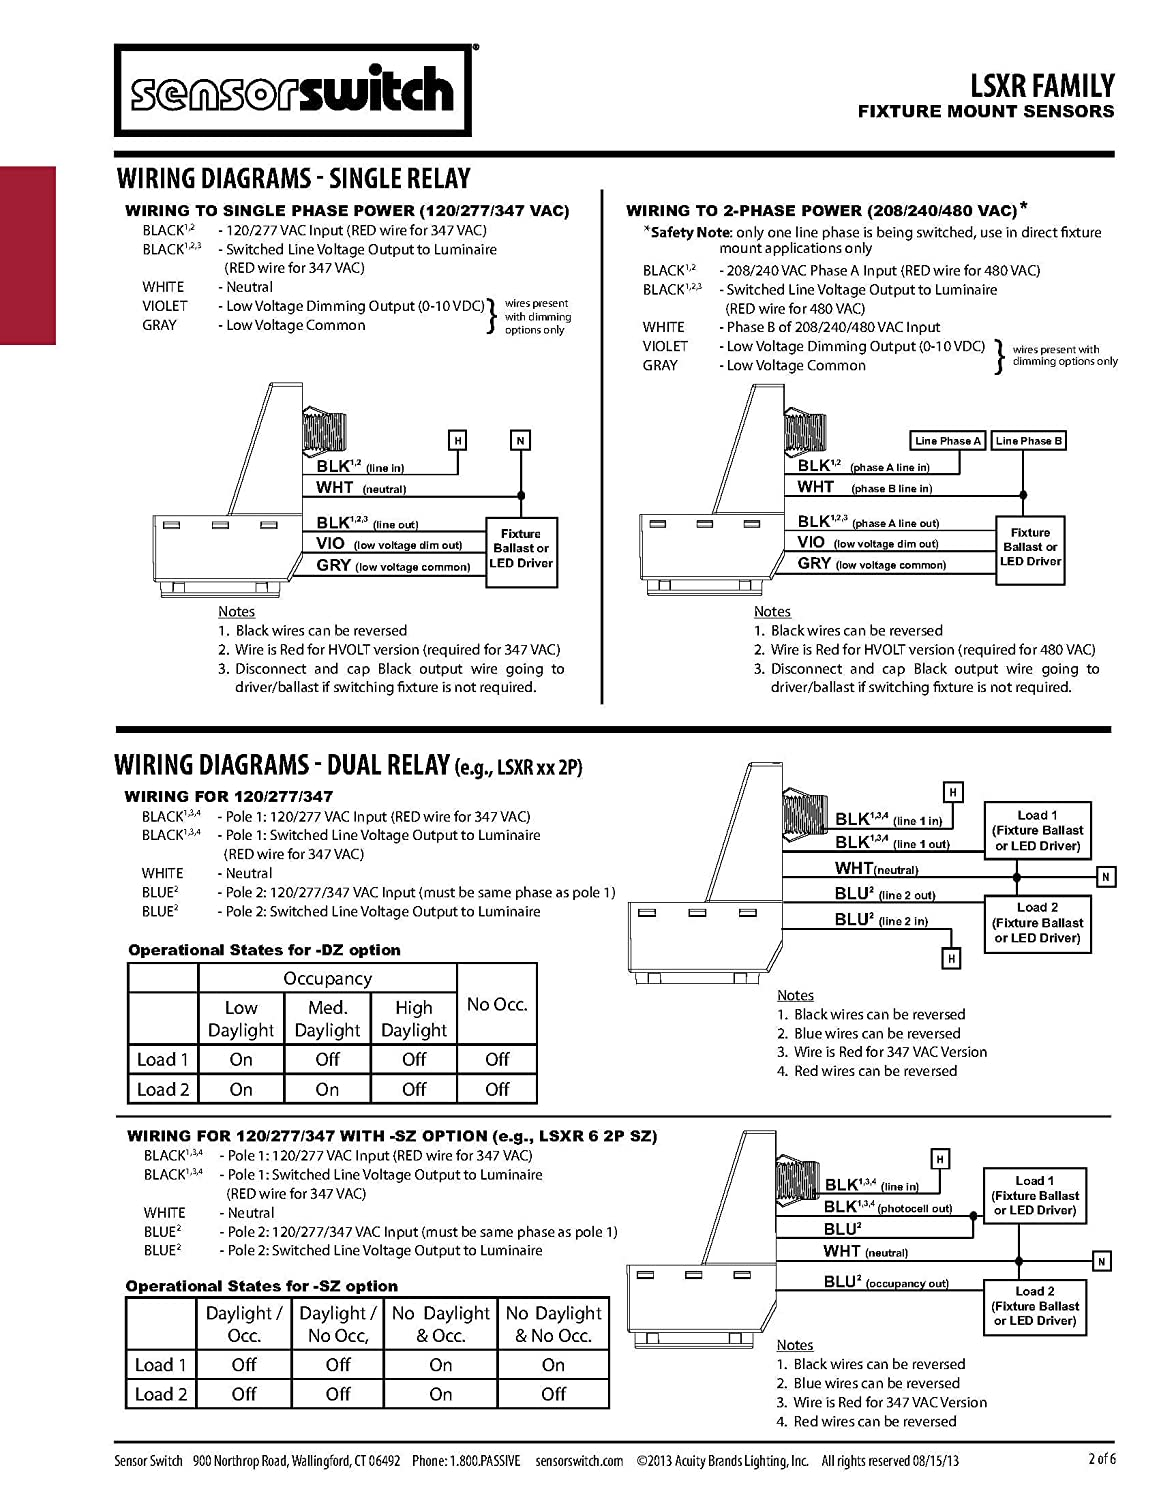 Lithonia Msx12 Wiring Diagram 29 Wiring Diagram Images Wiring Diagrams Edmiracle Co